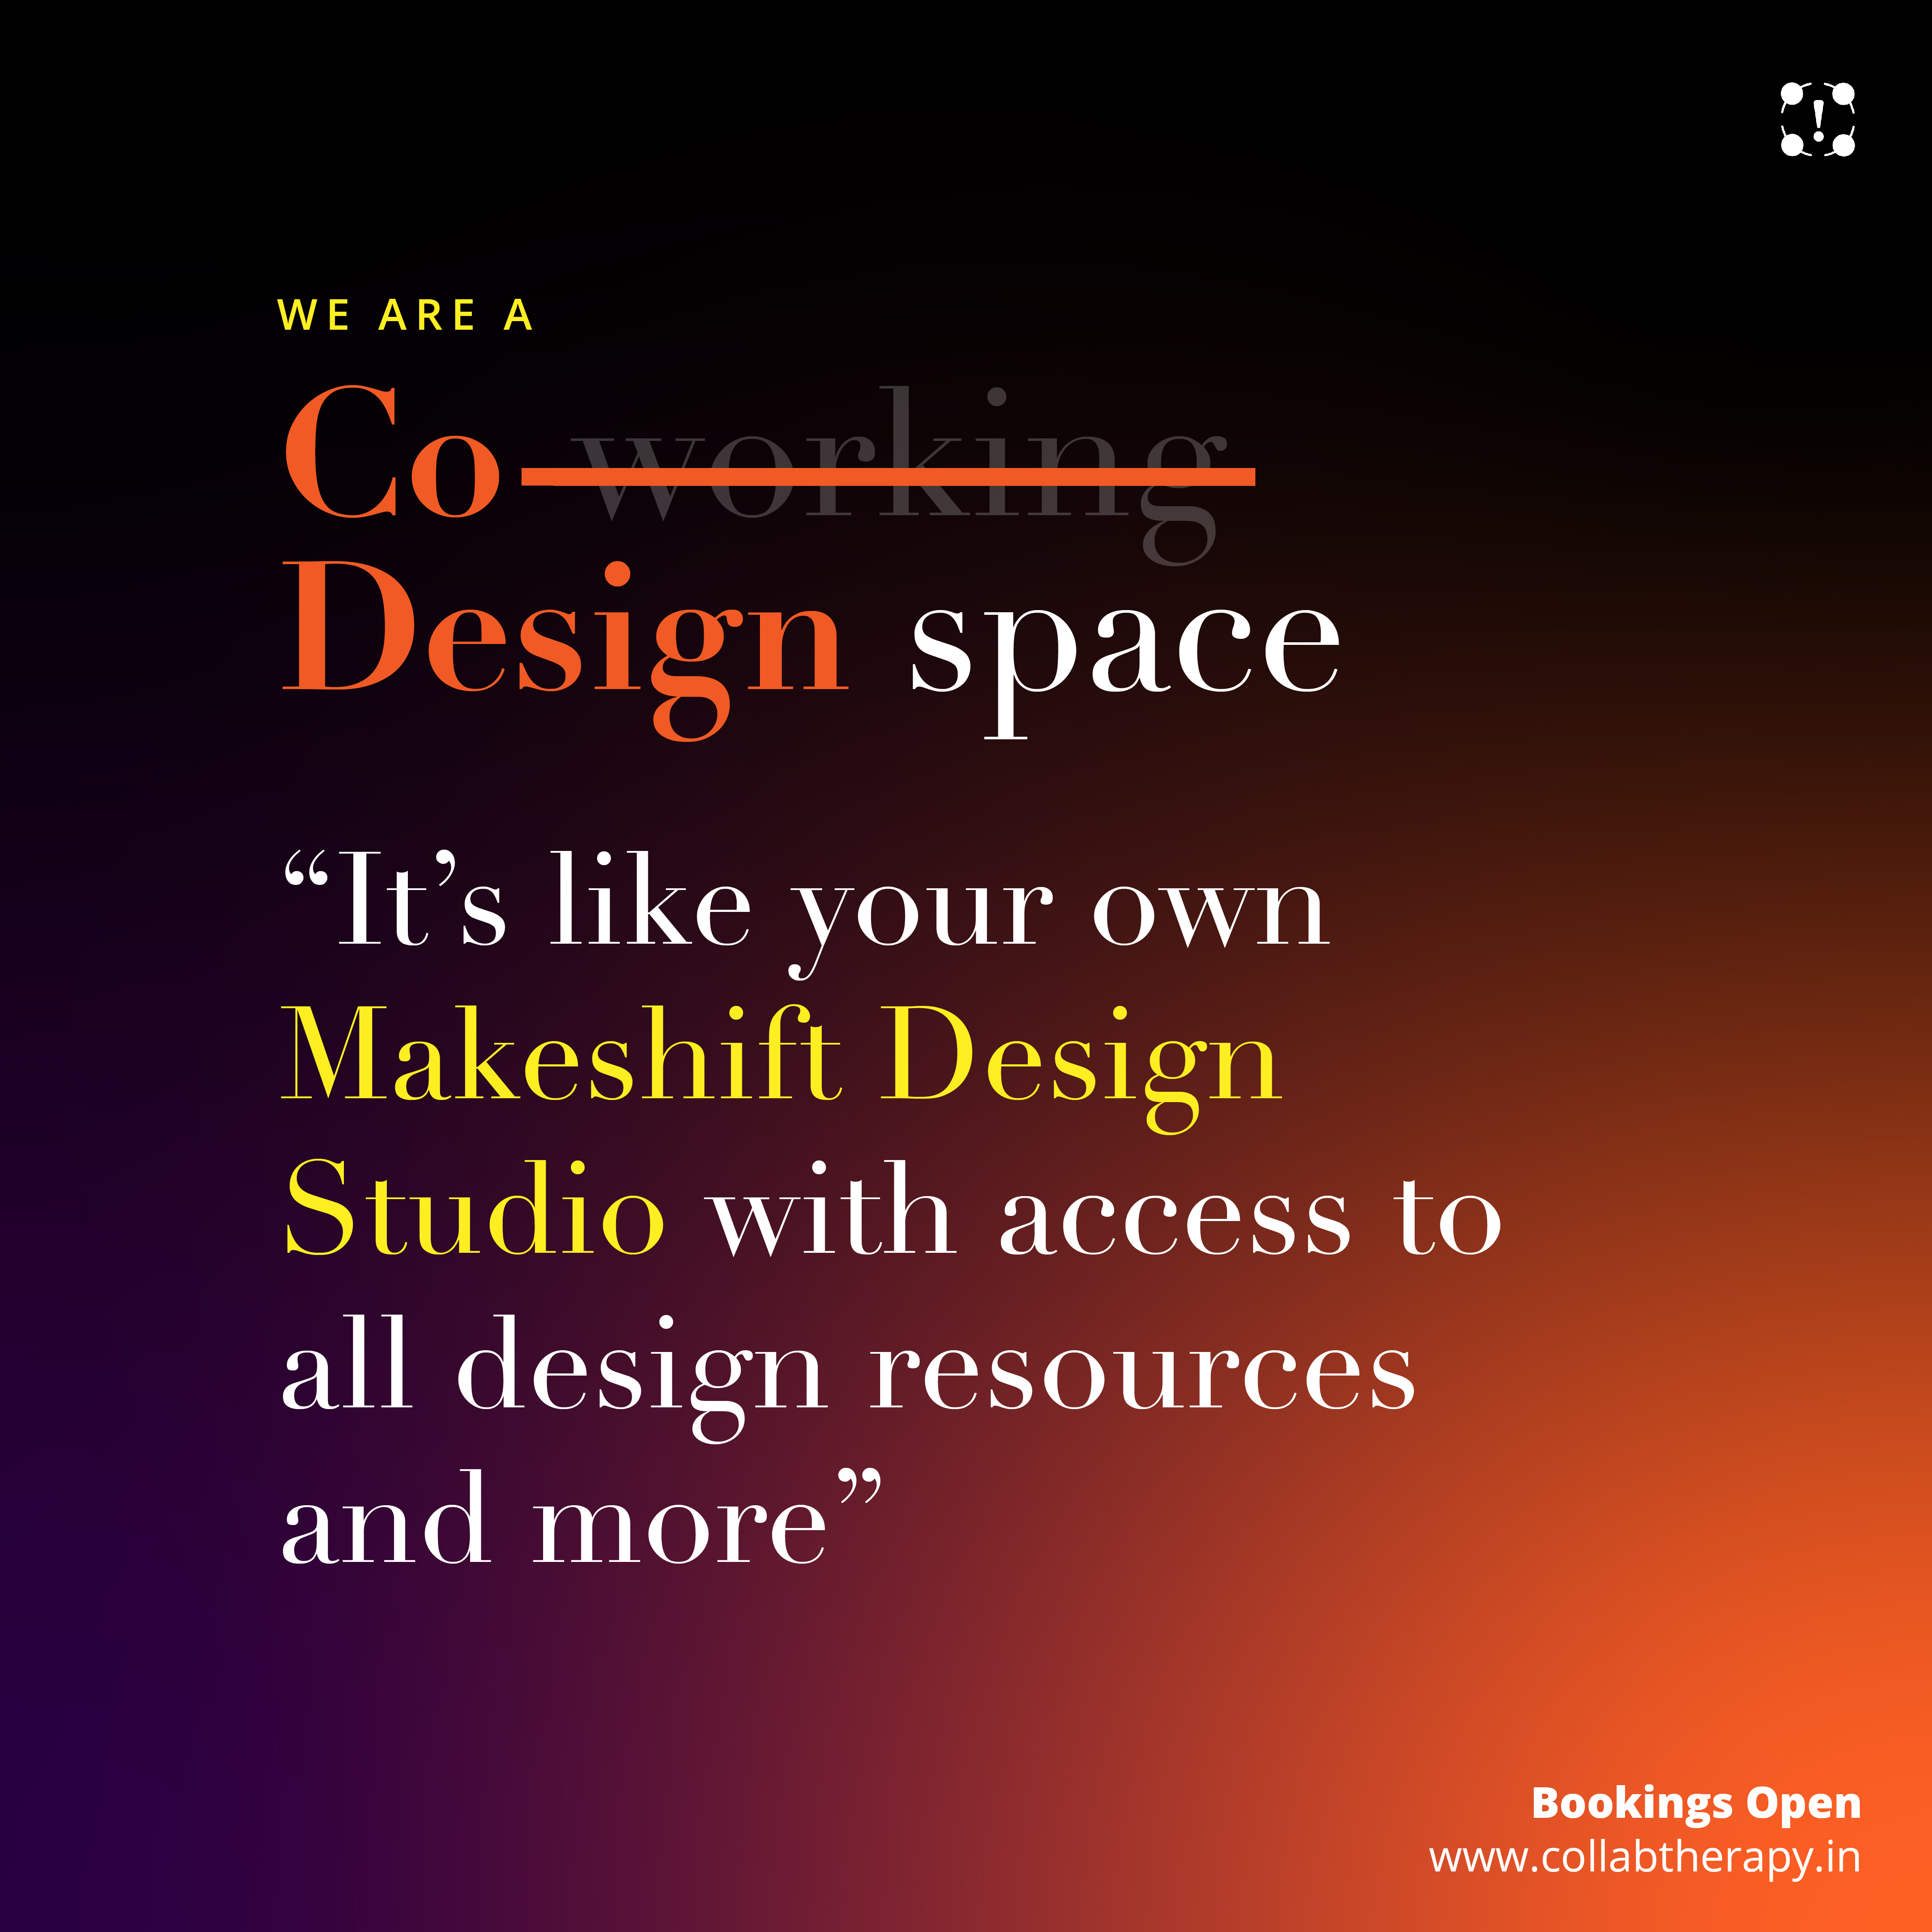 We are a Co-design Space. Its like your own Makeshift Design Studio with access to all design resources and more. A One stop idea-to-execution ecosystem; Collab Therapy brings you all resources at a single point access - to Design, Develop,Prototype, Test, Fabricate and Seed your ideas!  Call now :- +911142828156